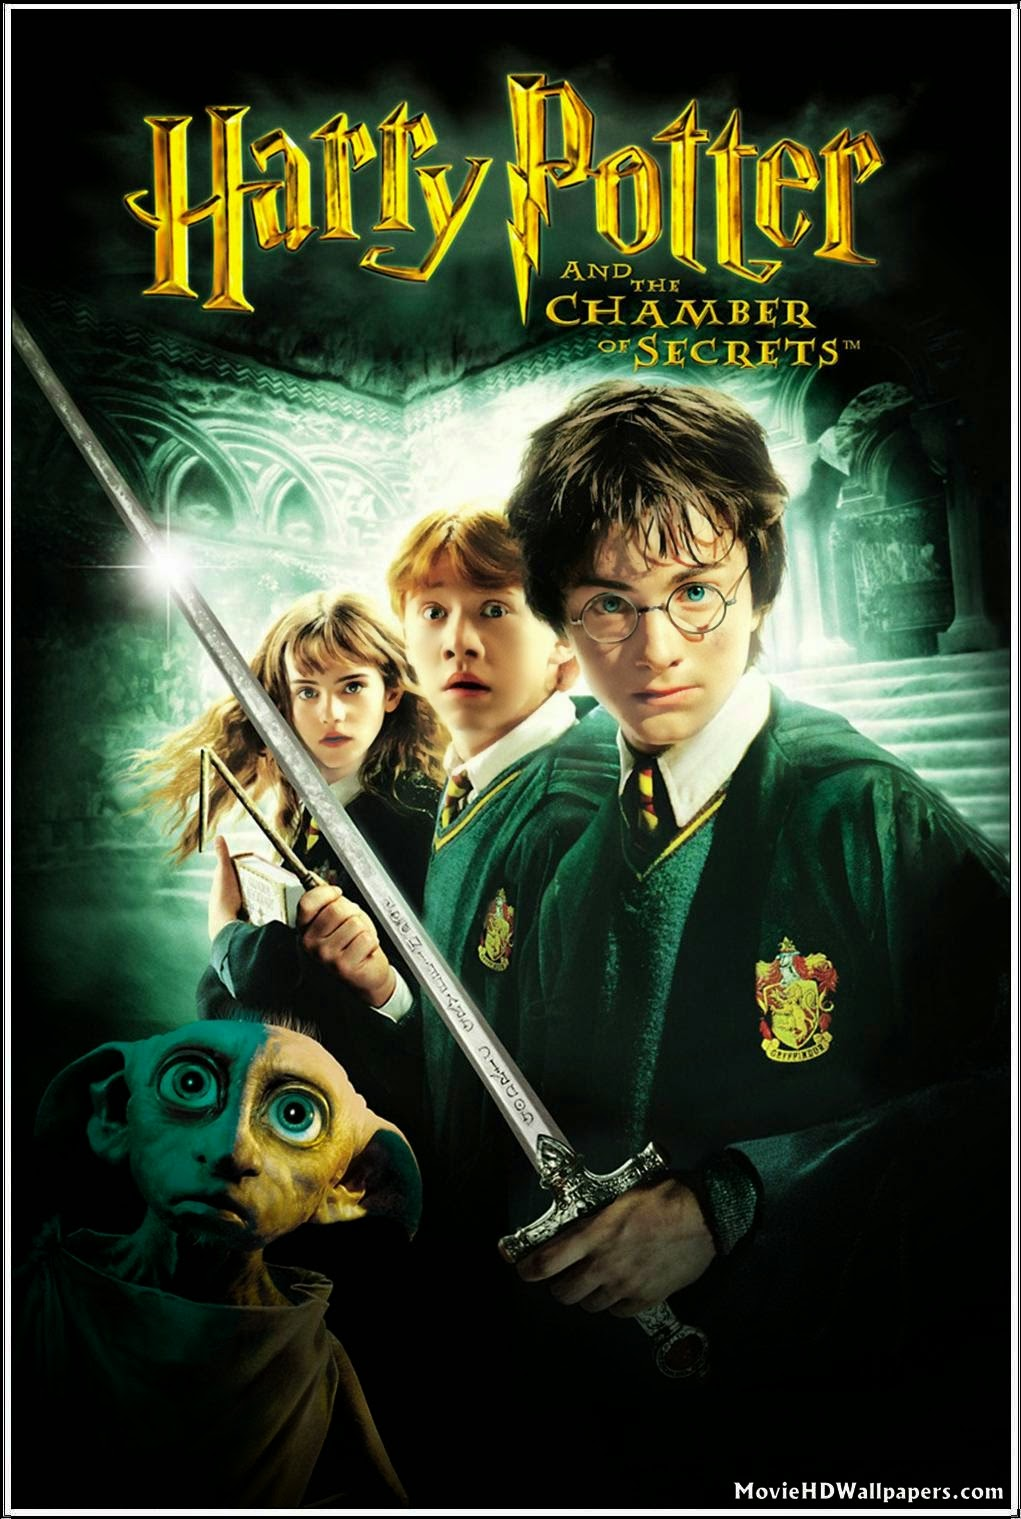 Harry potter and the chamber of secrets movie watch online in hindi